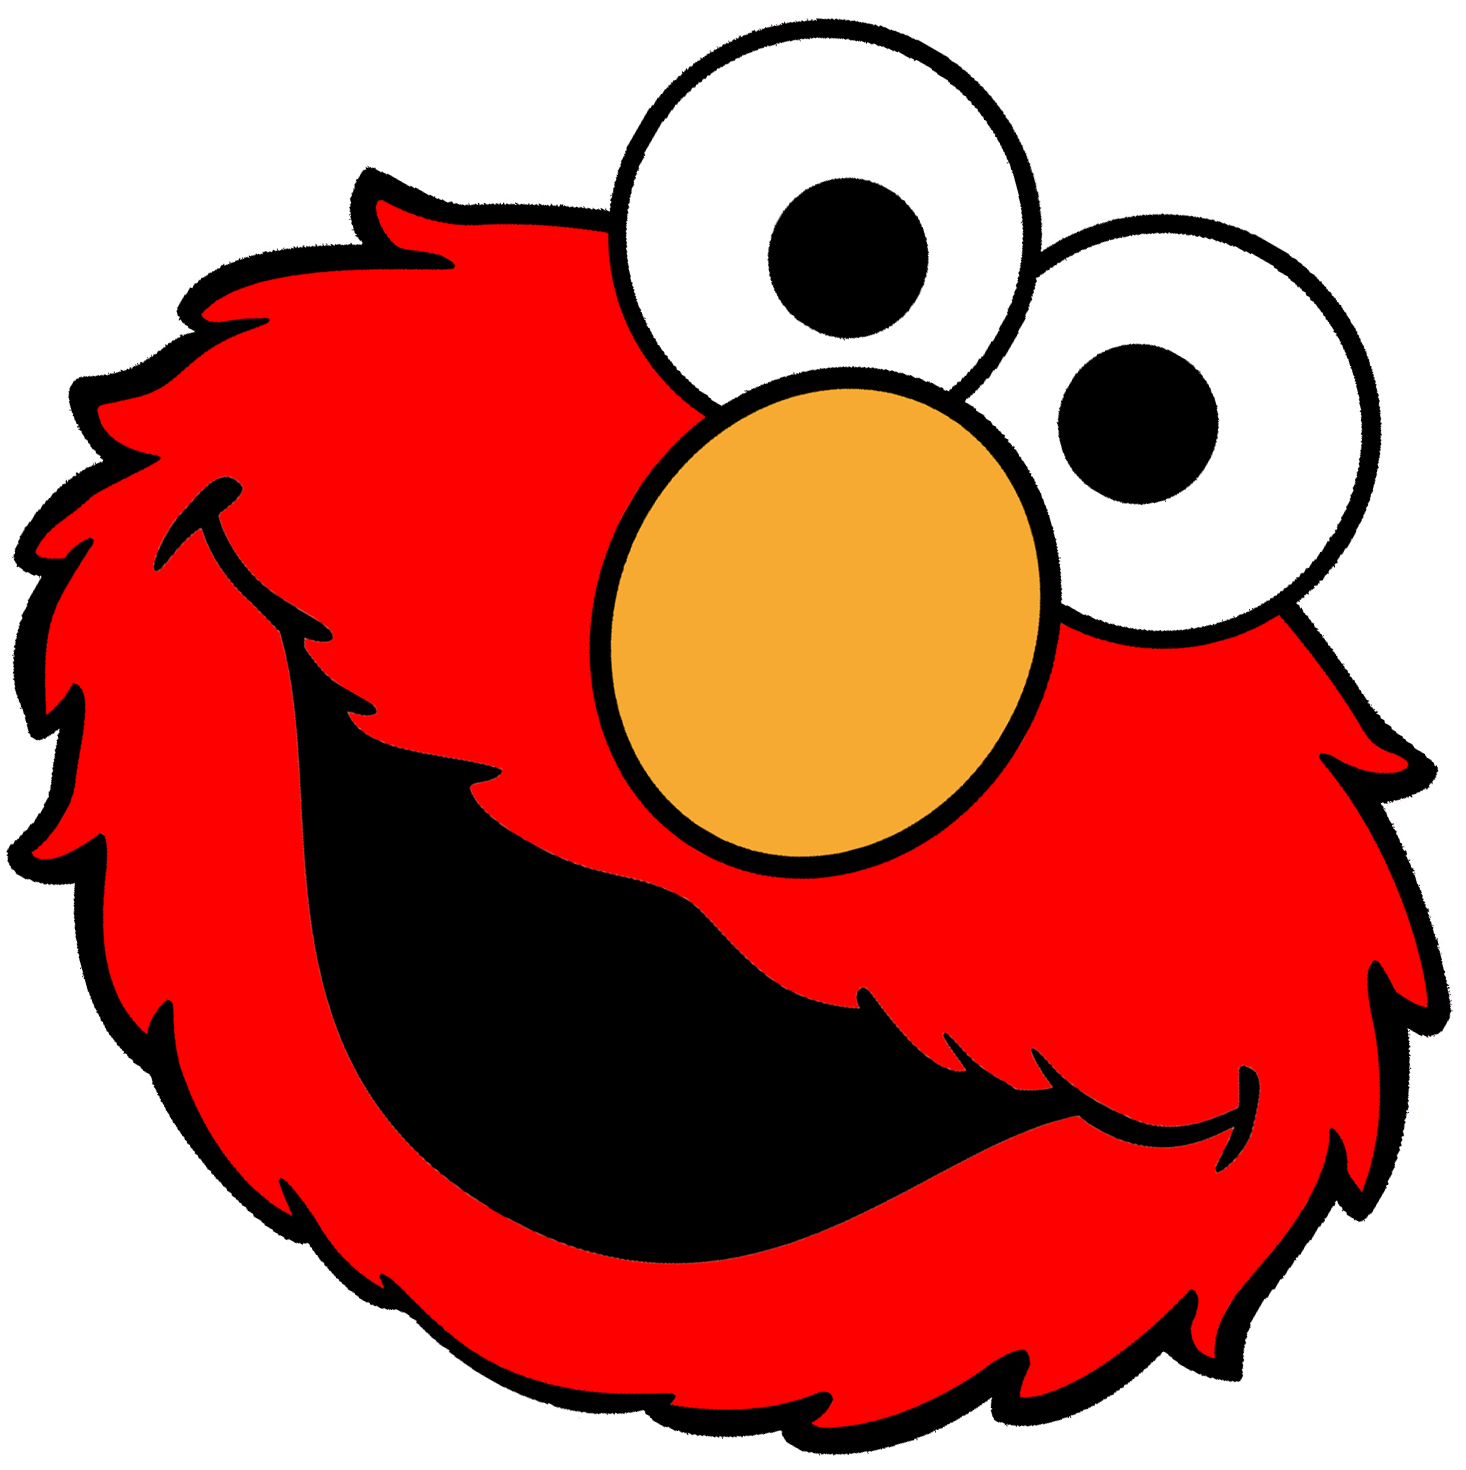 Elmo birthday png. Hd transparent images pluspng